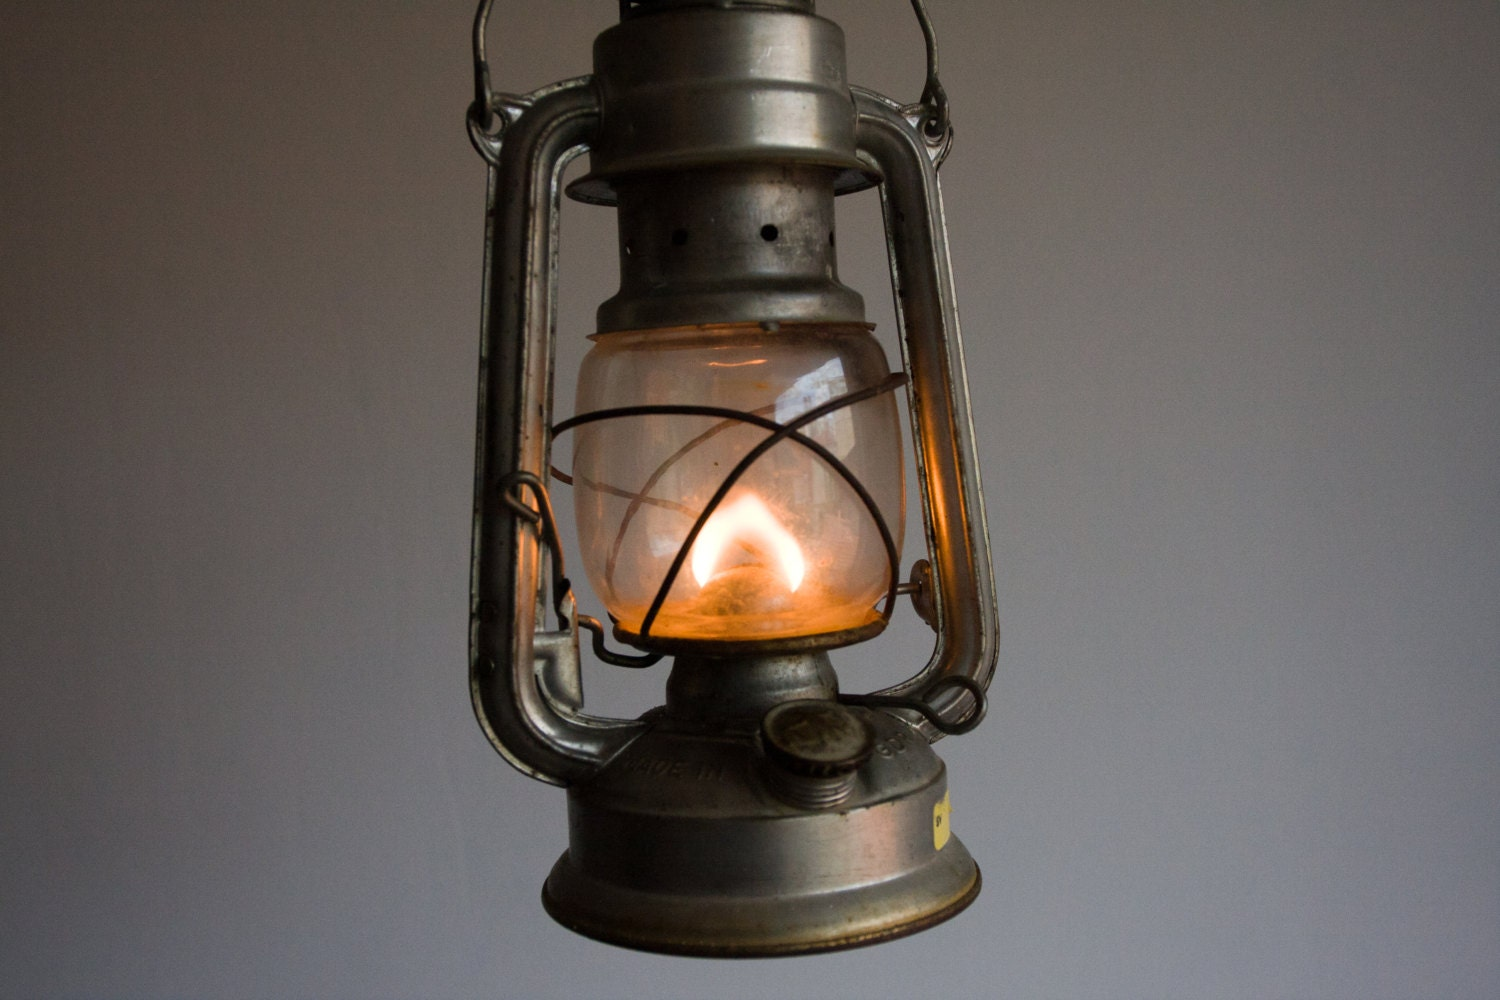 Vintage Gas Lantern, German Gas Lamp, Nightlight, Bat N 158, Made in GDR, Black, Dark, Fire, Camp, Storm, Dude, Man, Dad, ohtteam - TheThingsThatWere